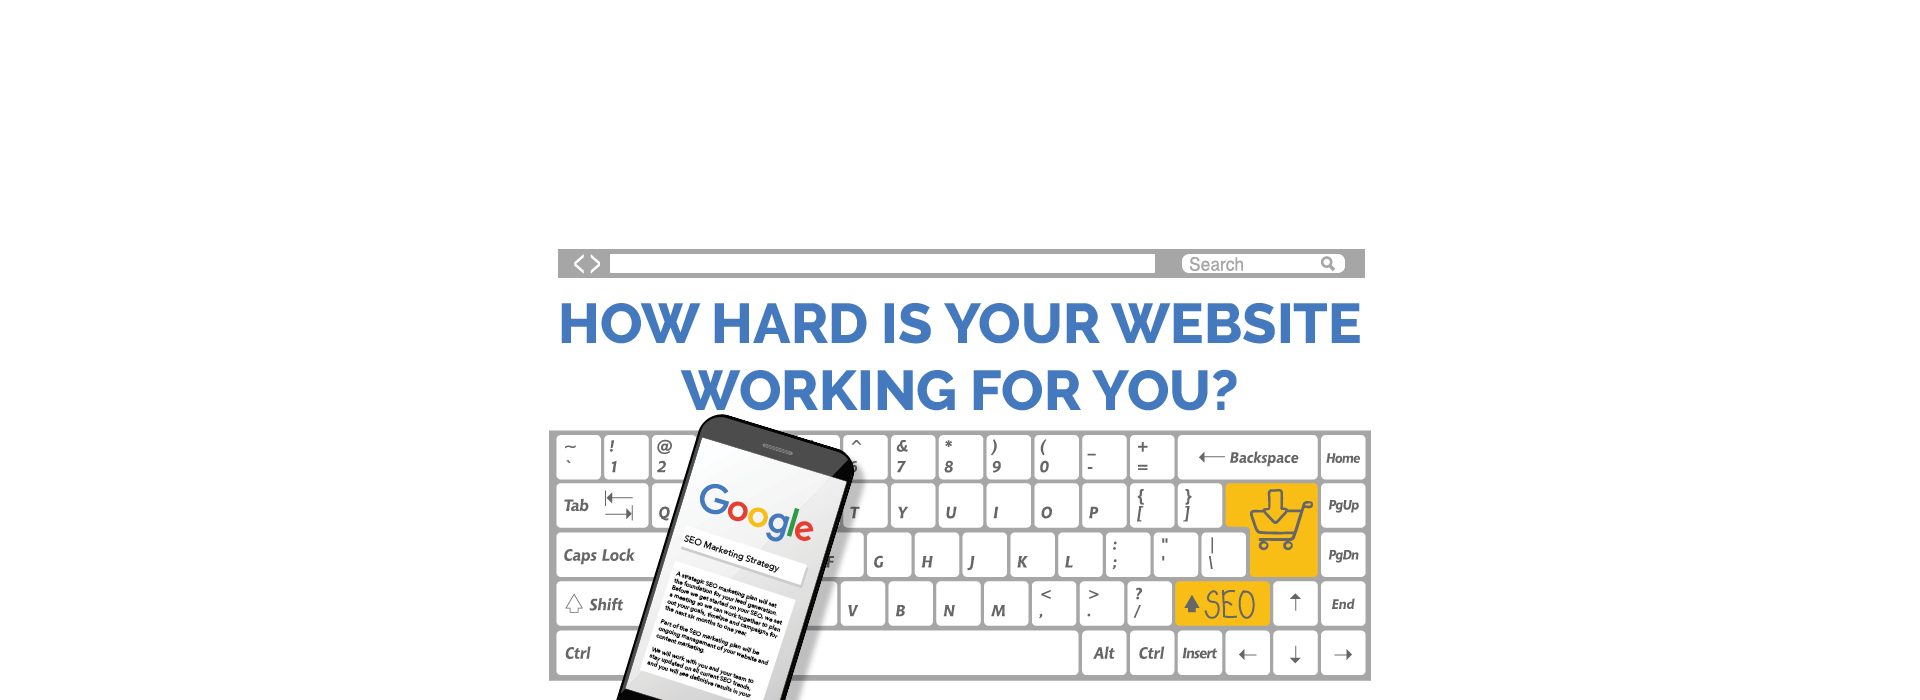 How hard is your website working for you?